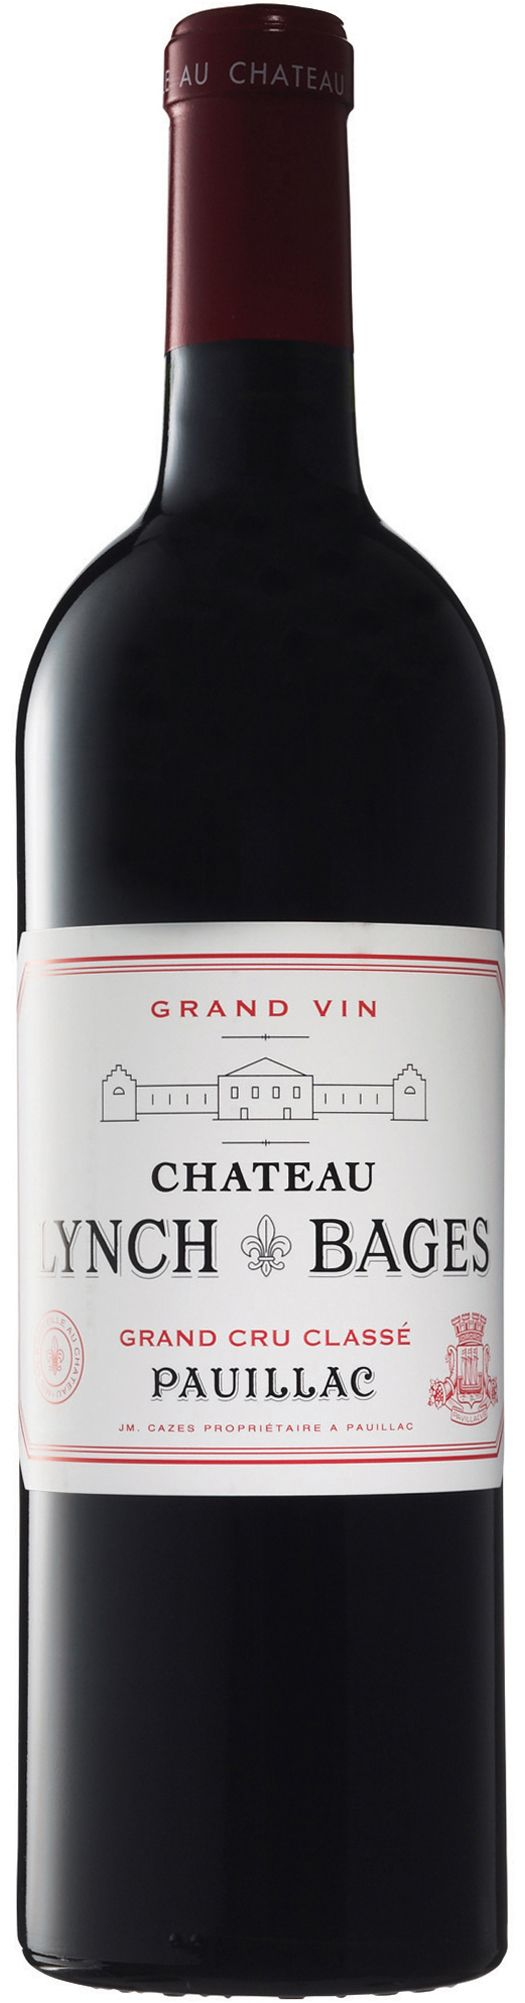 Chateau Lynch-Bages, 2005